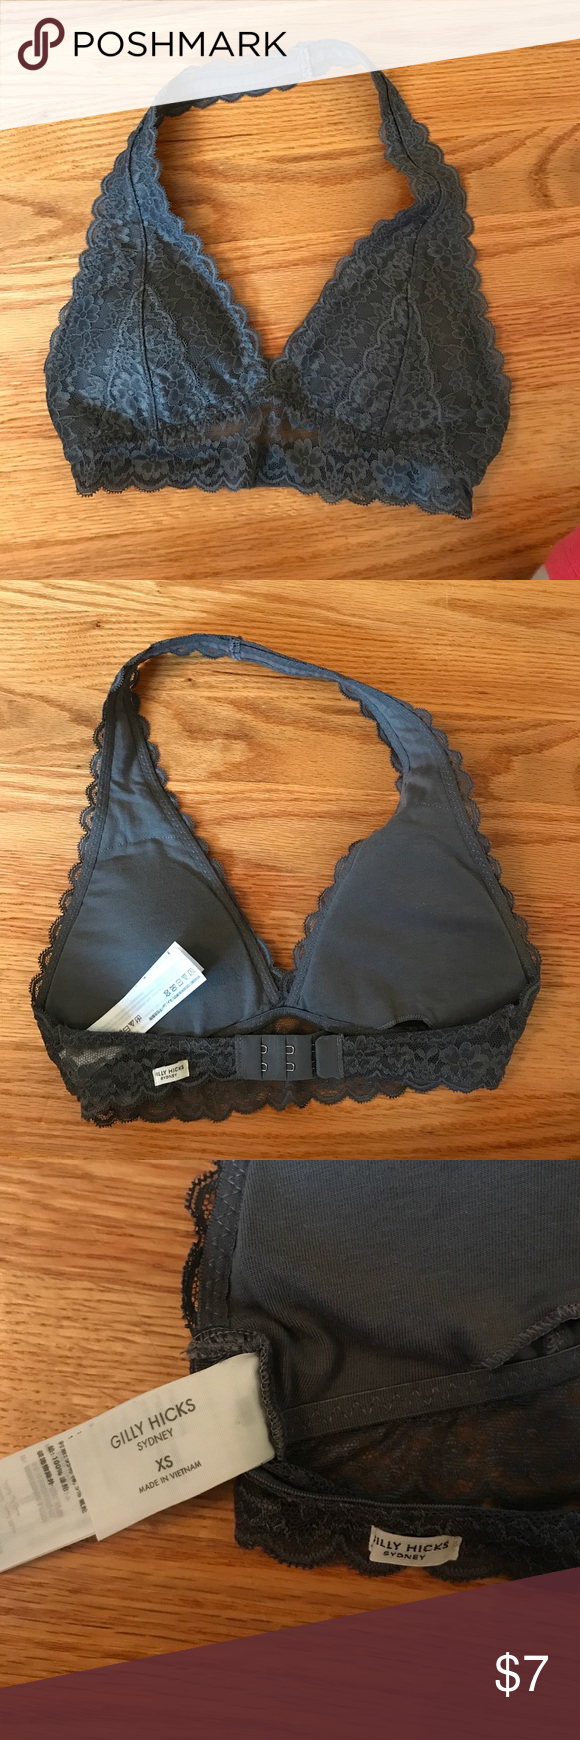 ea55b92a92 Extra small-grey bralette Gilly Hicks  Hollister Brand New (never worn)